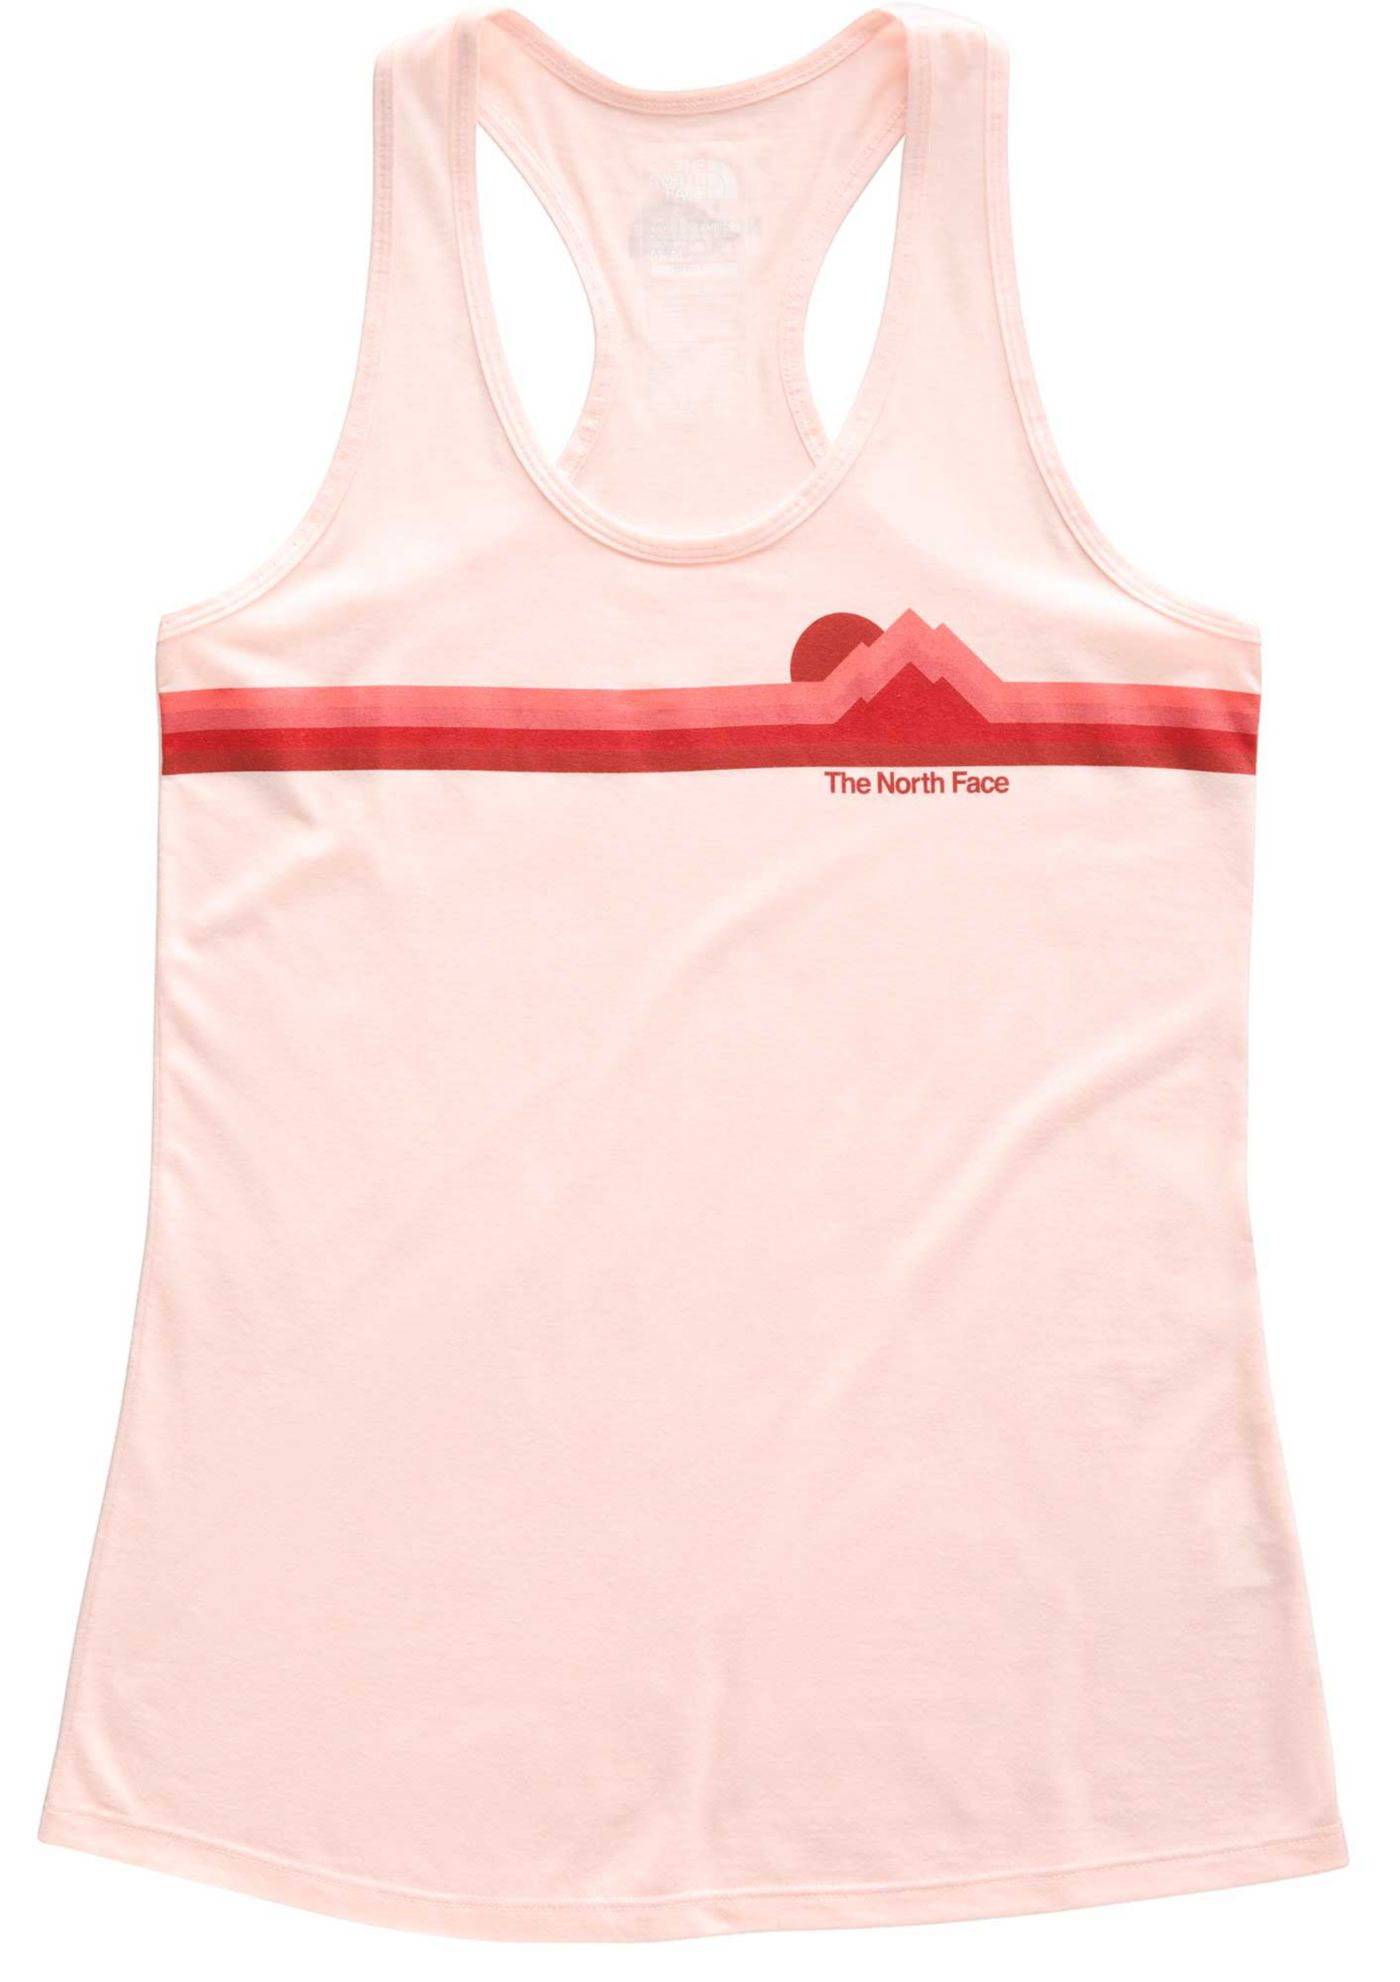 The North Face Women's Graphic MC Tri-Blend Tank Top